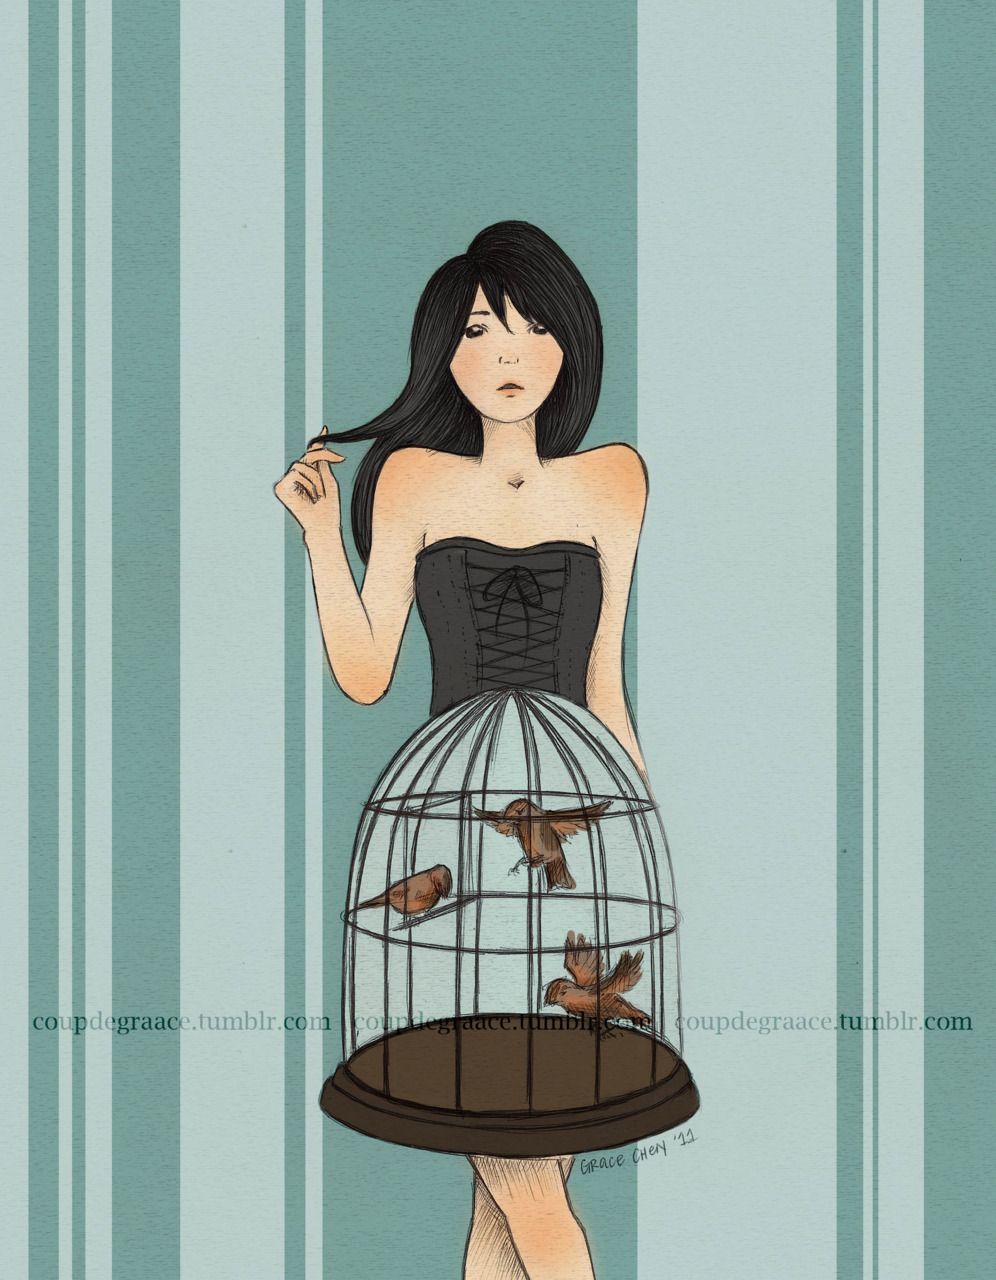 She Encaged Them I kind of liked this better back when it was a sketch; oh well, I'm satisfied with it for now. I'm free to take suggestions to improve this, so feel free to reply to this post with anything. :0 On an unrelated note, I wish school started already. The semester doesn't start until the 25th and I'm bored out of my mind at home. </3 Ball point pen and Photoshop